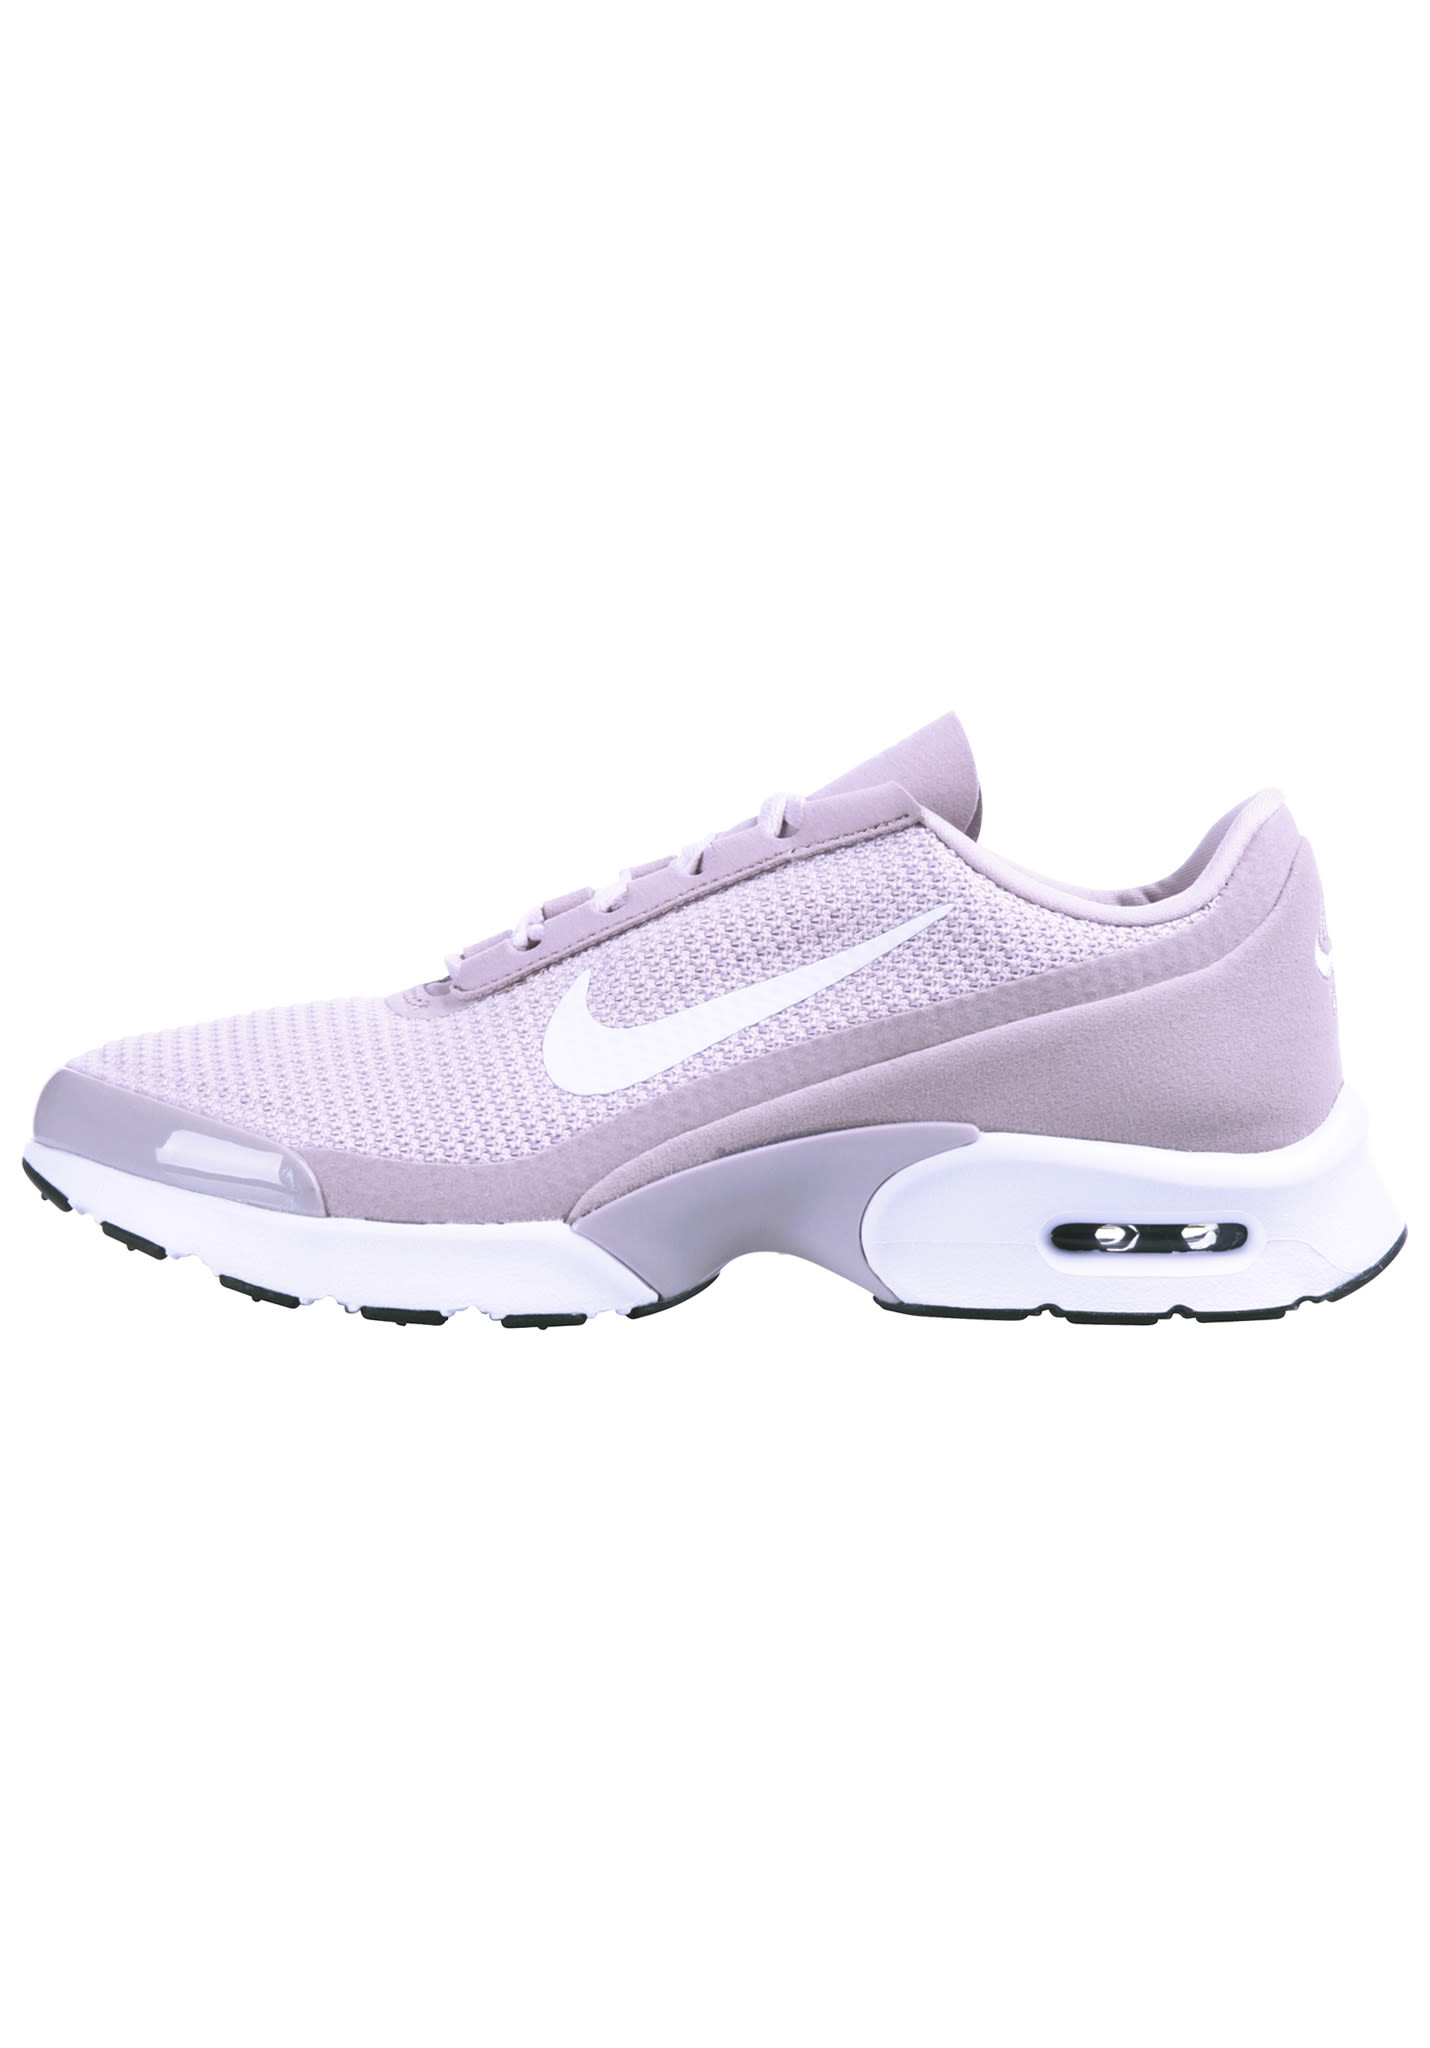 half off 9974b c21c9 NIKE SPORTSWEAR Air Max Jewell - Baskets pour Femme - Violet - Planet Sports